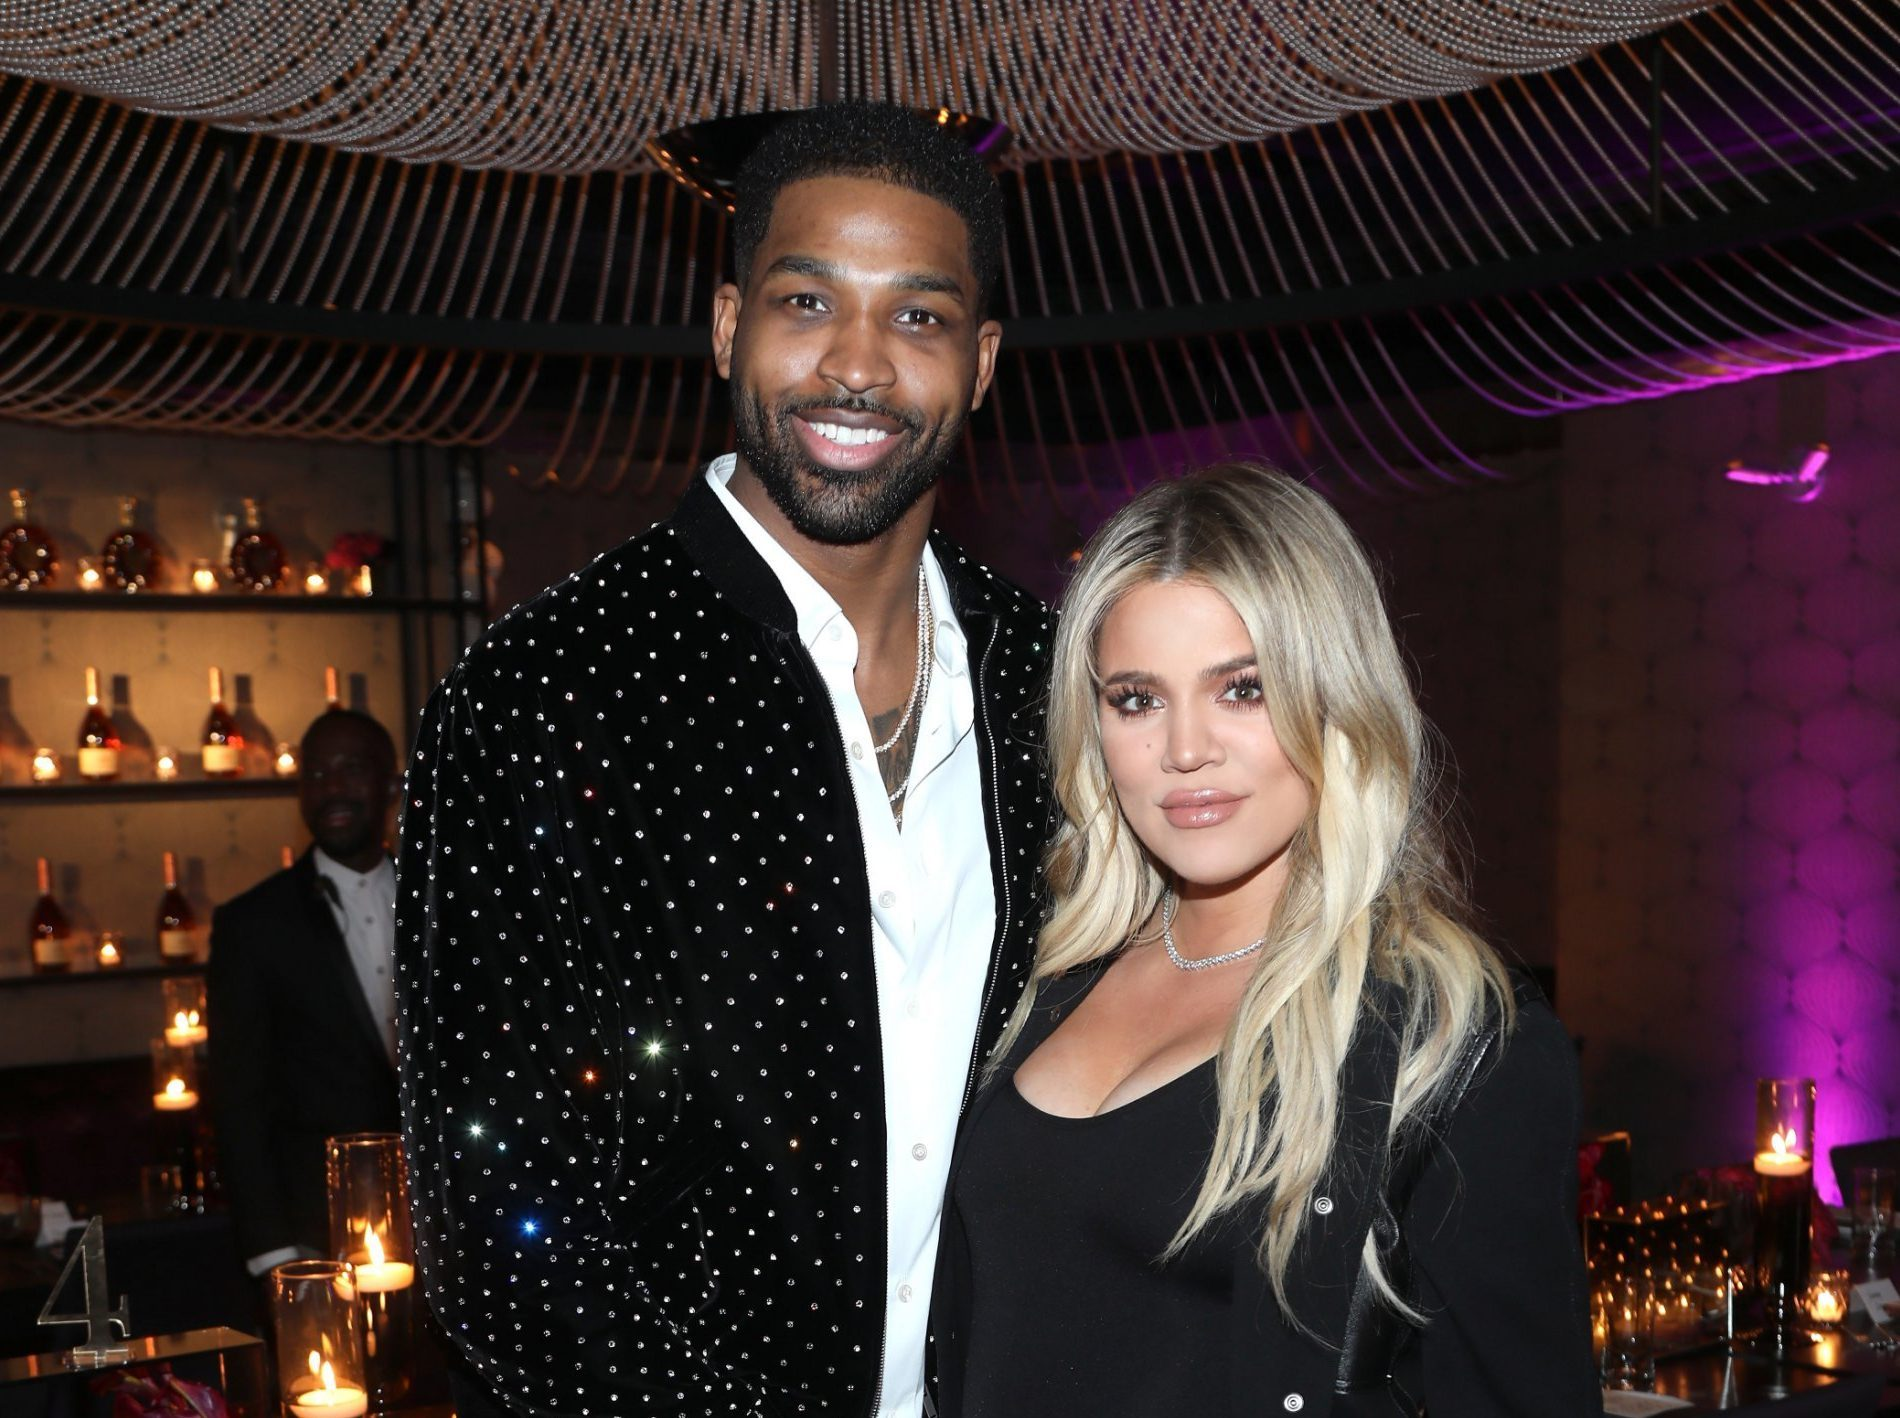 Khloe Kardashian Talks Co-Parenting With Ex-Boyfriend Tristan Thompson